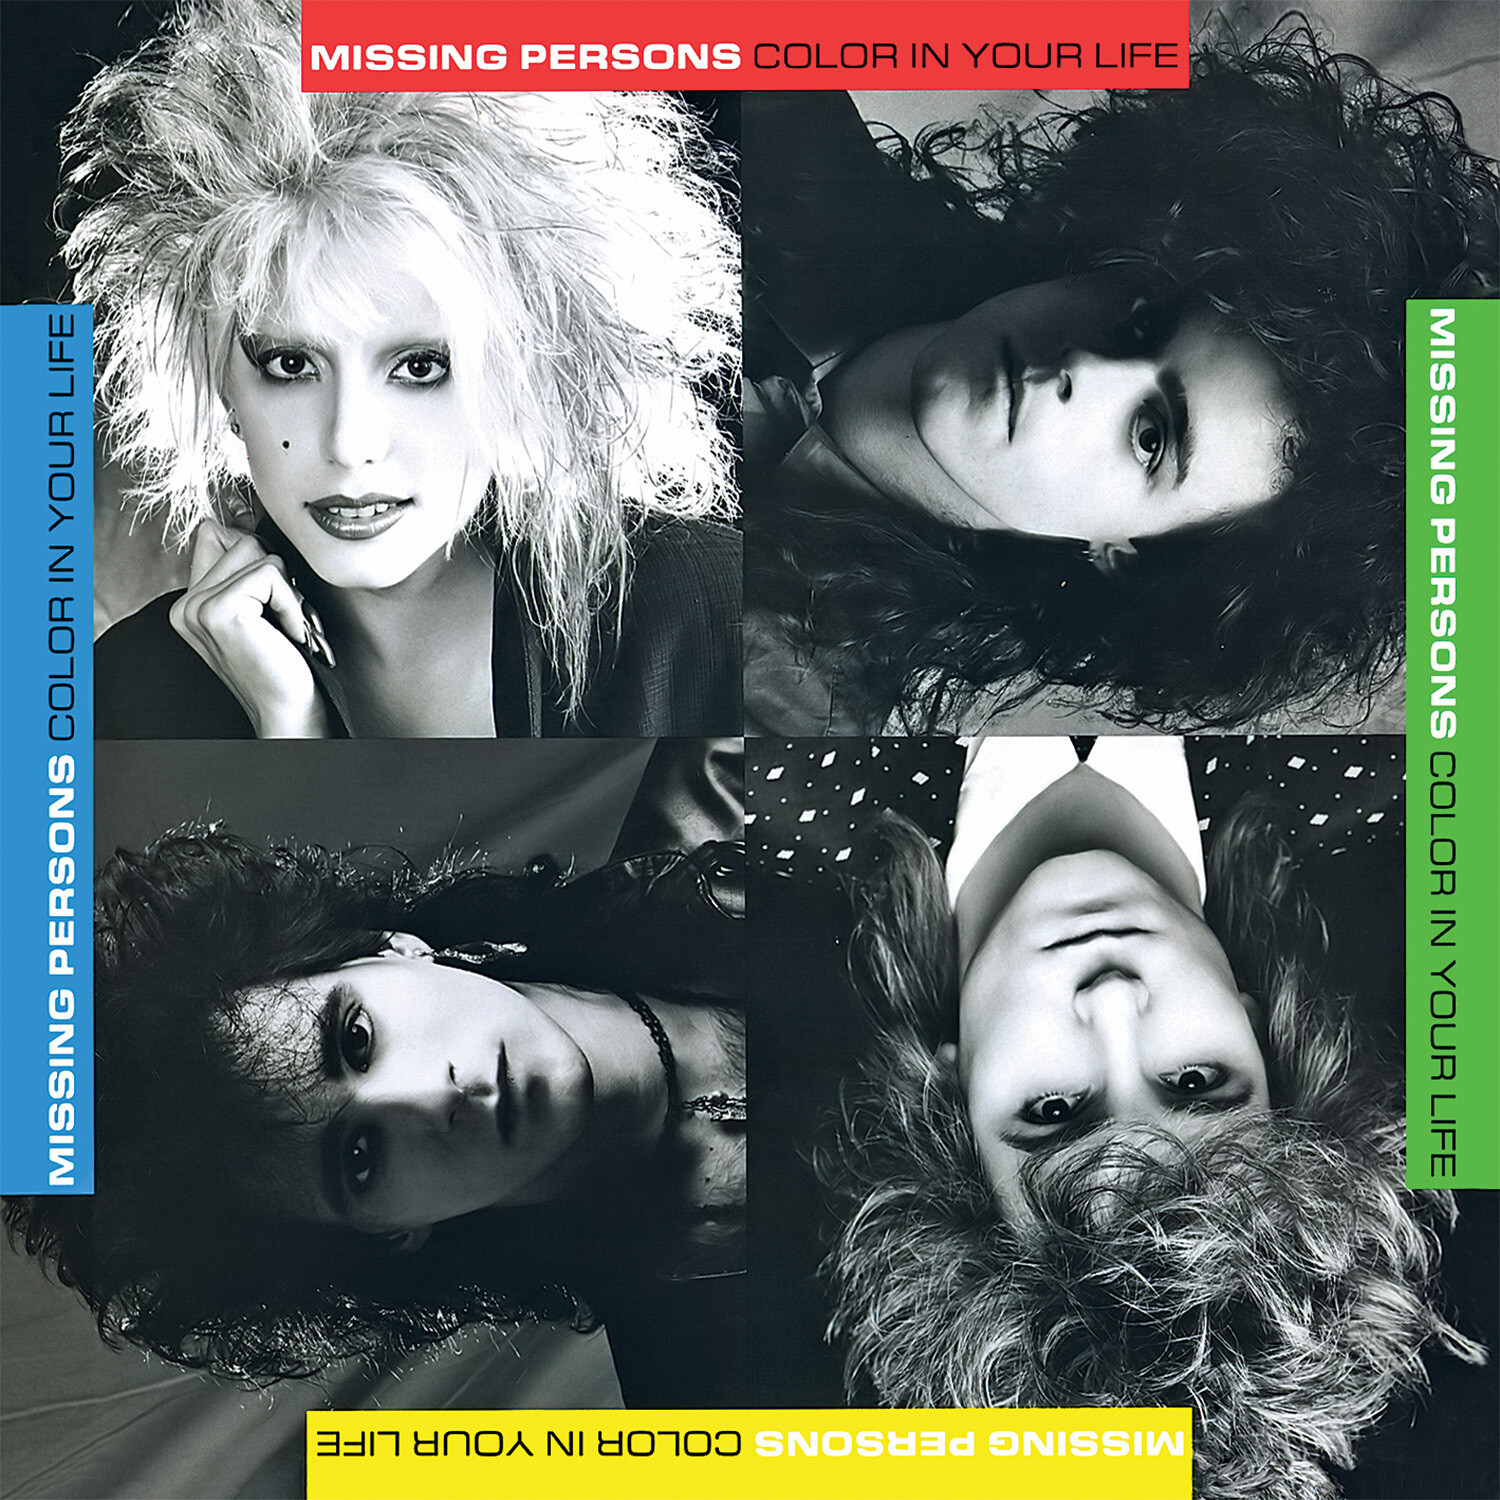 Missing Persons / Color In Your Life CD (2021 Remastered & Expanded Edition)